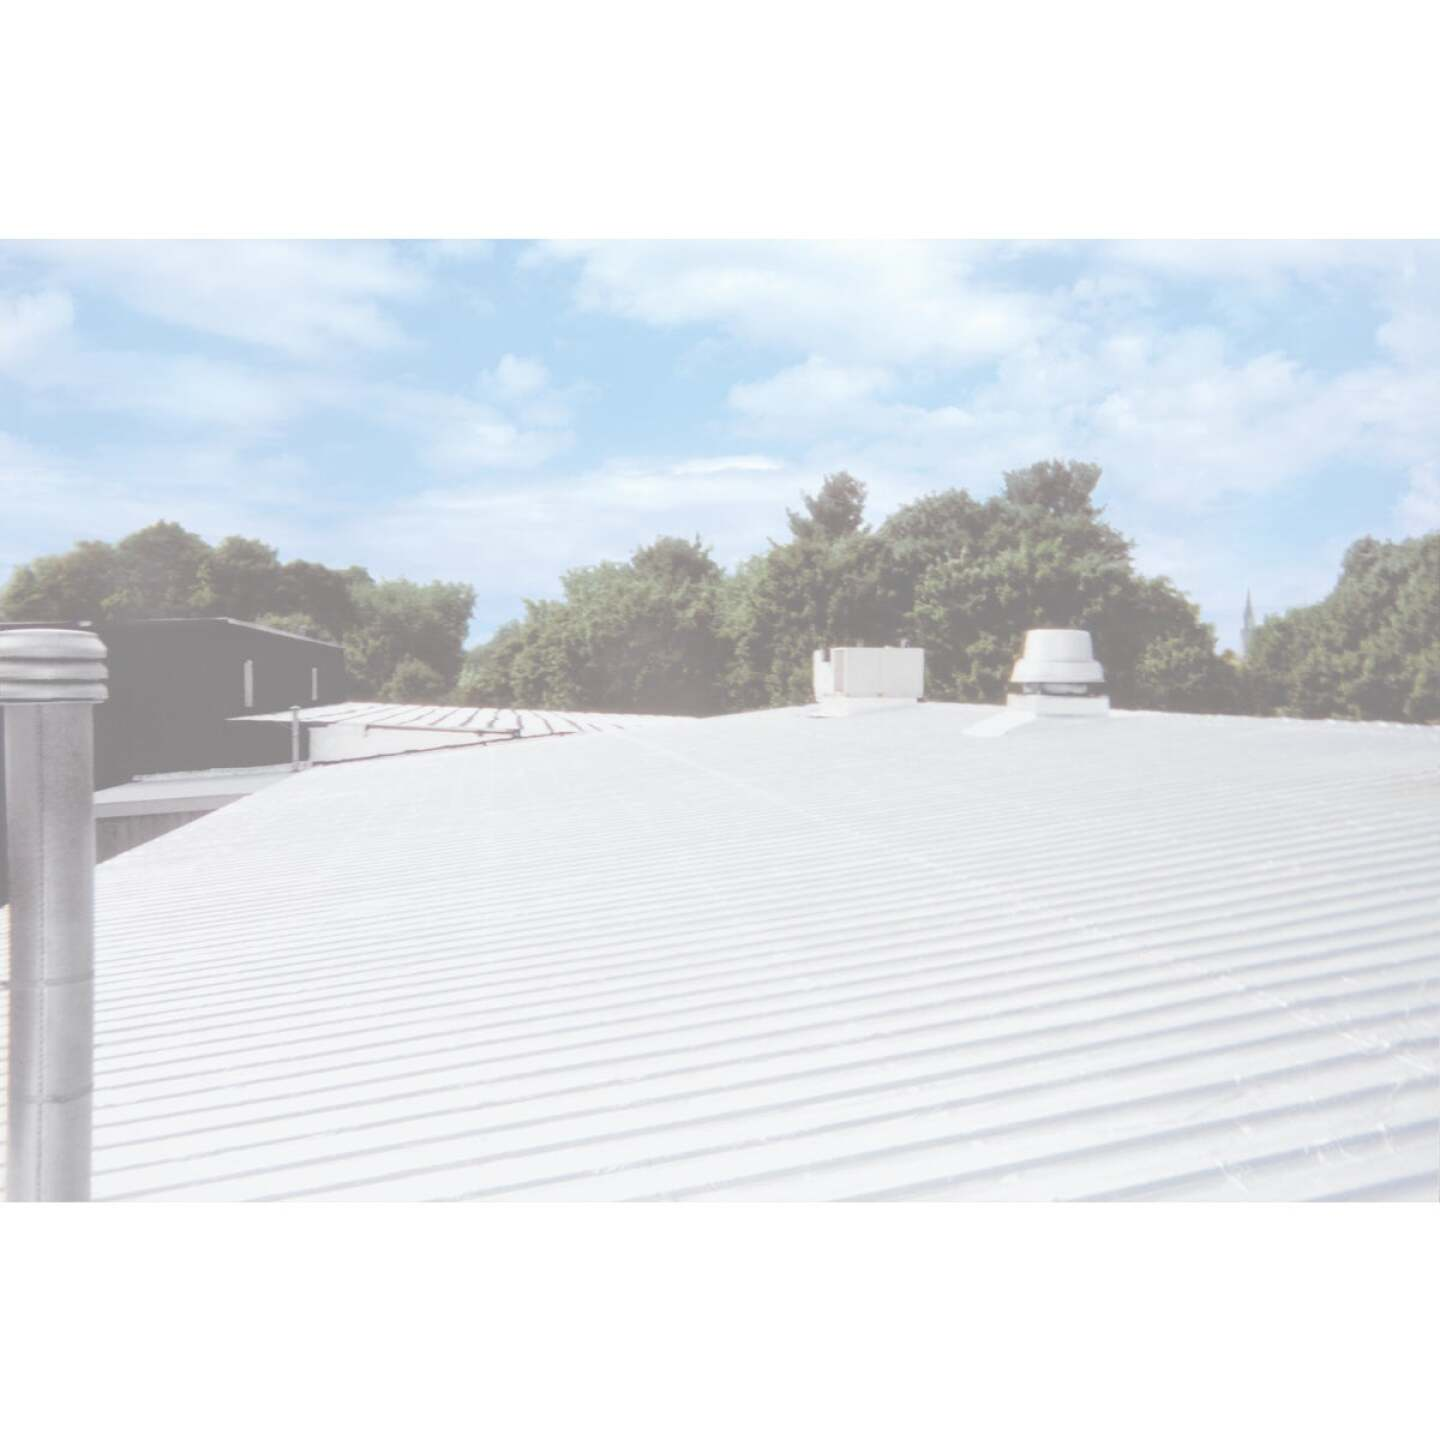 MFM Peel & Seal 36 In. X 33-1/2 Ft. Aluminum Roofing Membrane Image 5